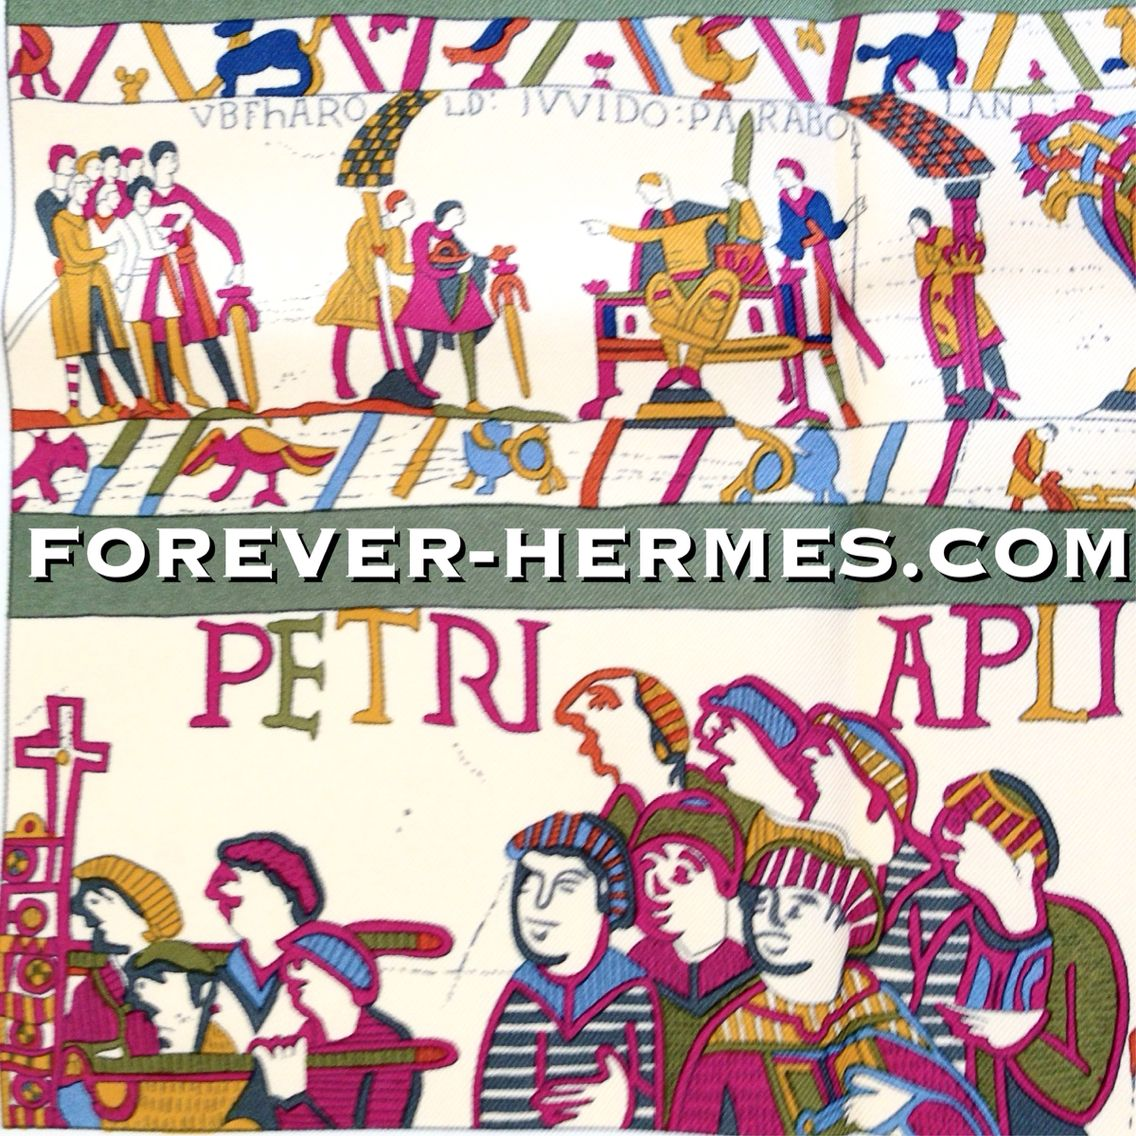 In our store http://forever-hermes.com #ForeverHermes is this Hermes Paris couture silk scarf titled A La Gloire De Guillaume designed by Philippe Ledoux featuring the Norman King of England William The Conqueror who built a large fleet and defeated King Harold as depicted in the #BayeuxTapestry  the #BattleOfHastings and extended his kingdom #Normandy  #dapper #history buff #gentleman #necktie #WallDecor #menswear #mensfashion #mensstyle #womensfashion #womenswear #Hermes #HermesCarre…